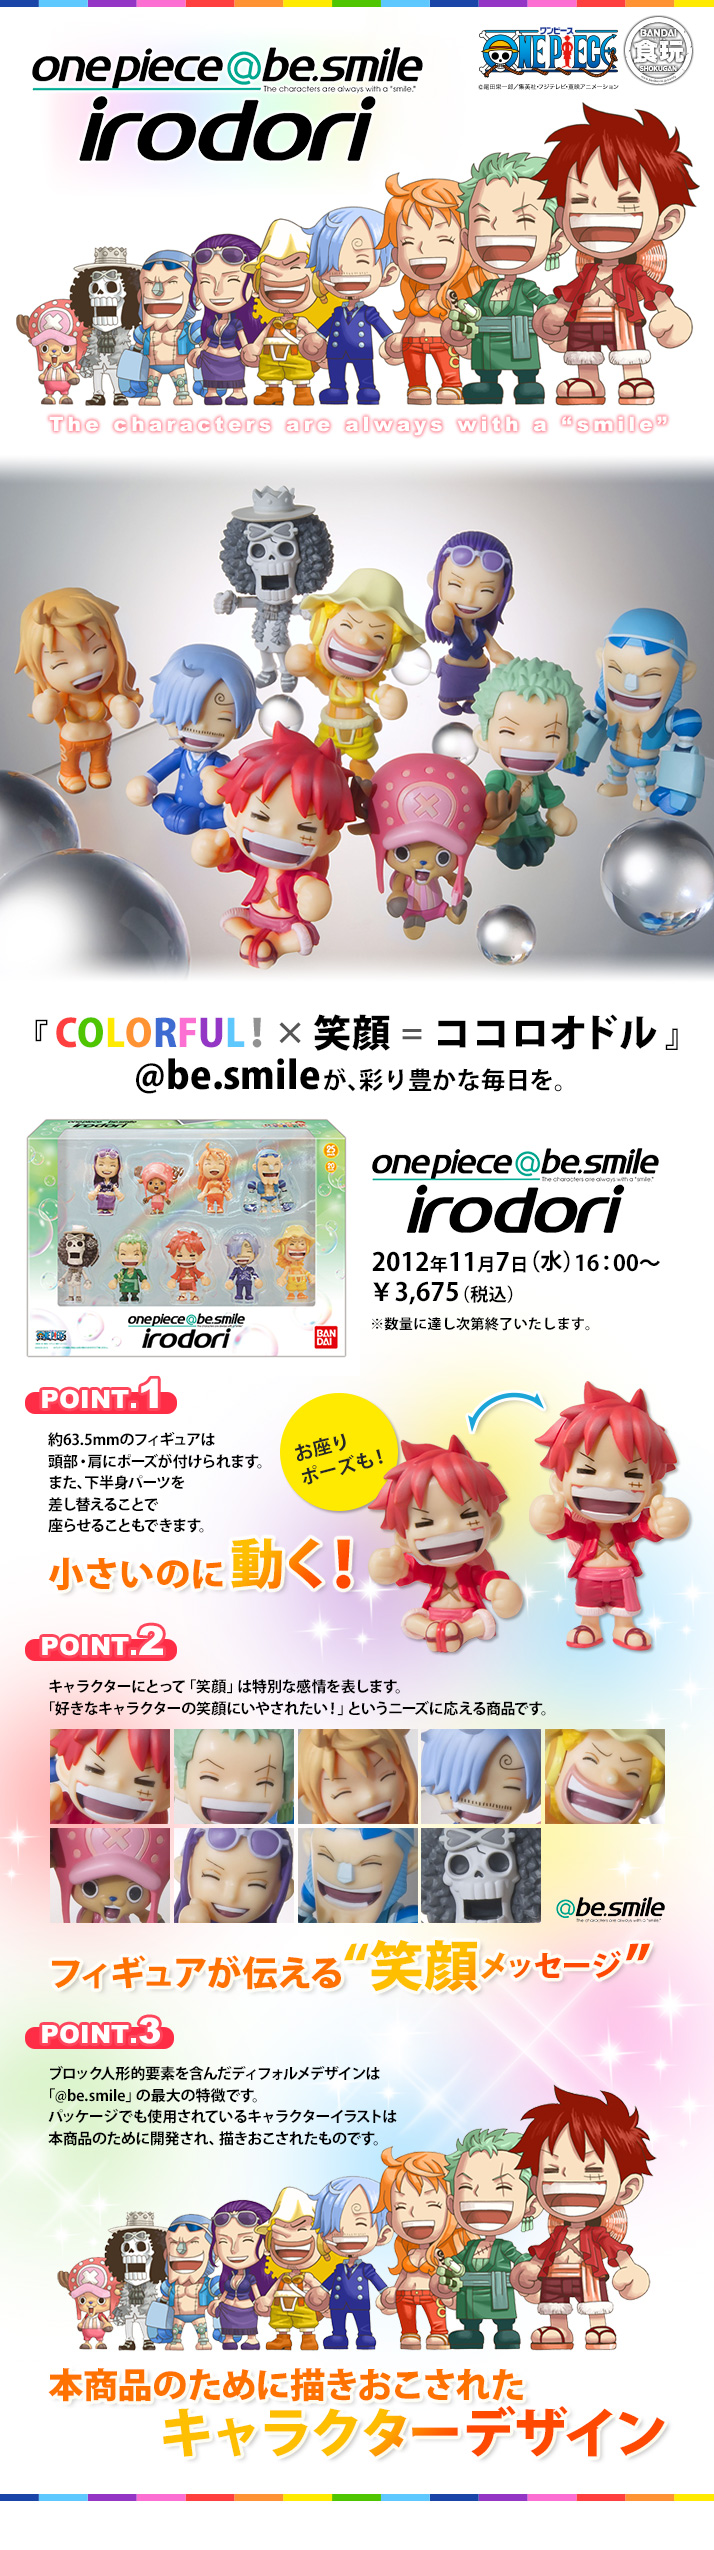 one piece@be.smile〜irodoriセット〜i